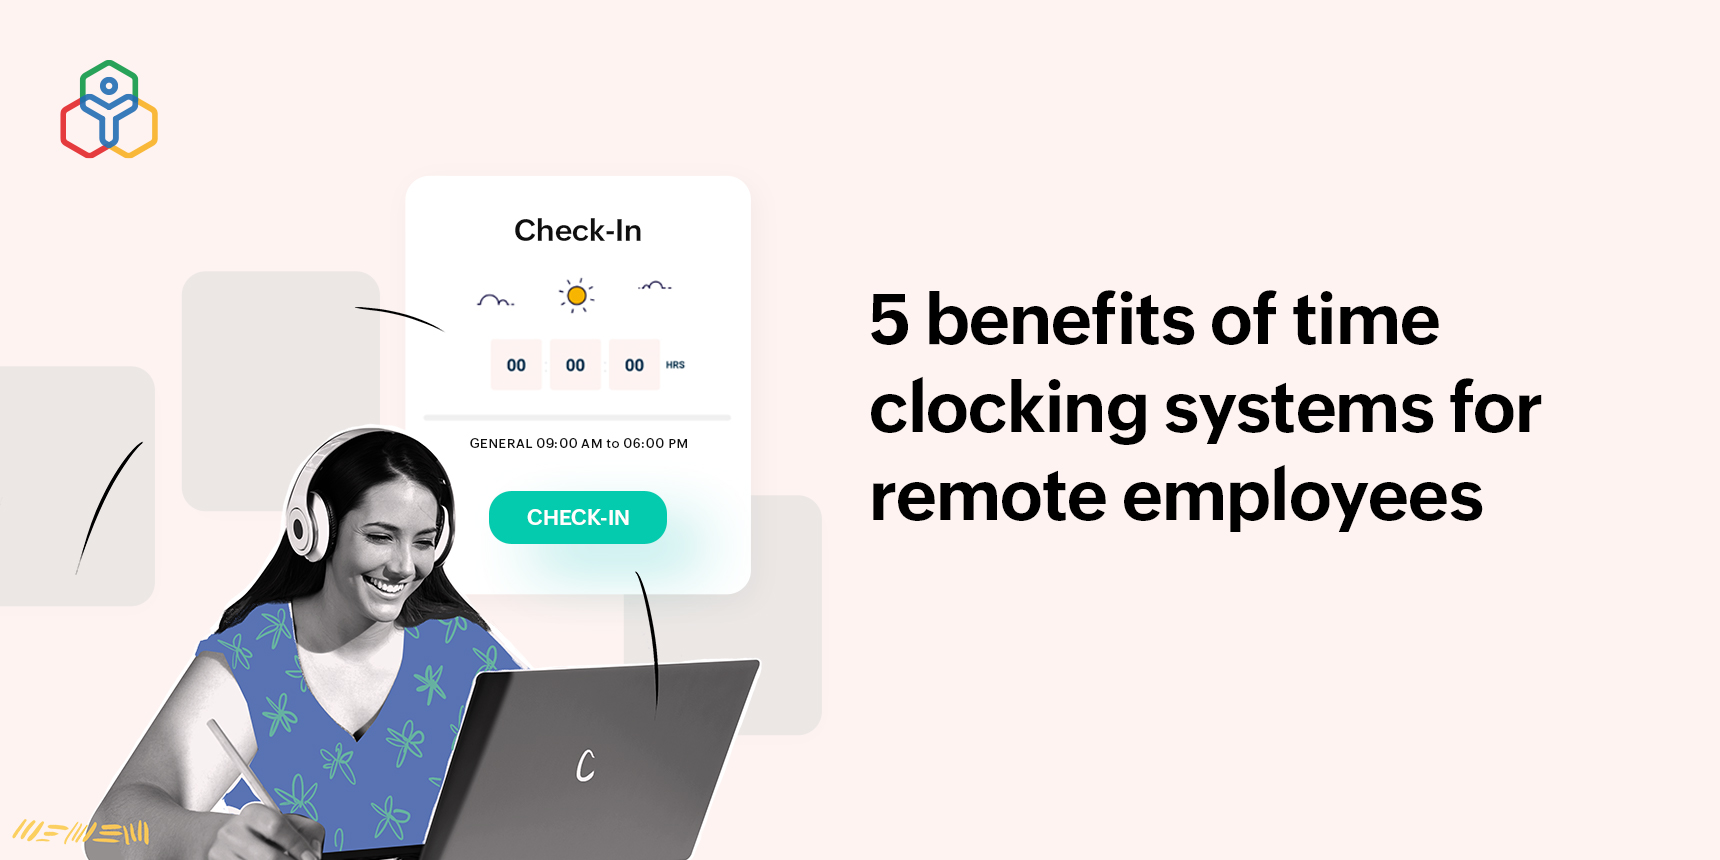 Time clocking system for remote employees